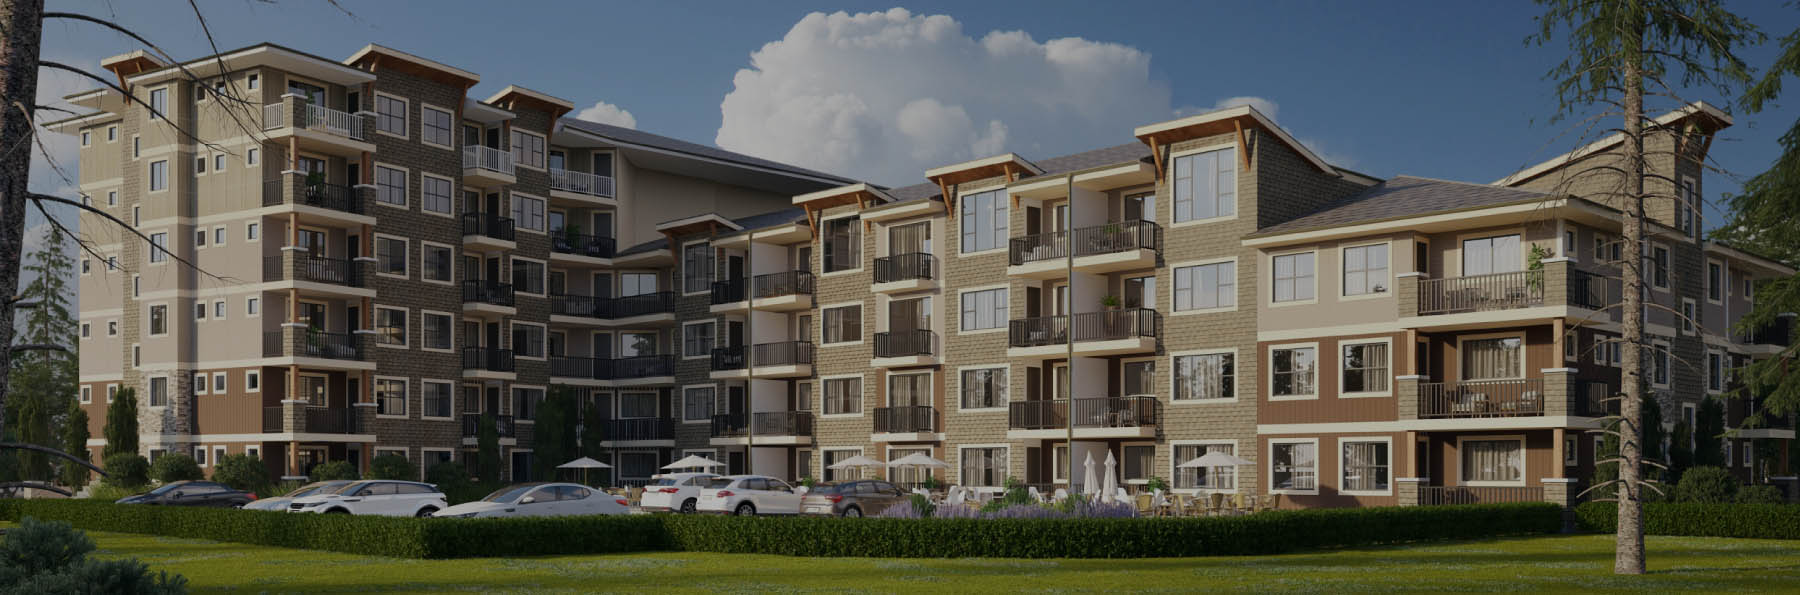 Grand Skymark new development in Abbotsford on Sumas Way - construction rendering